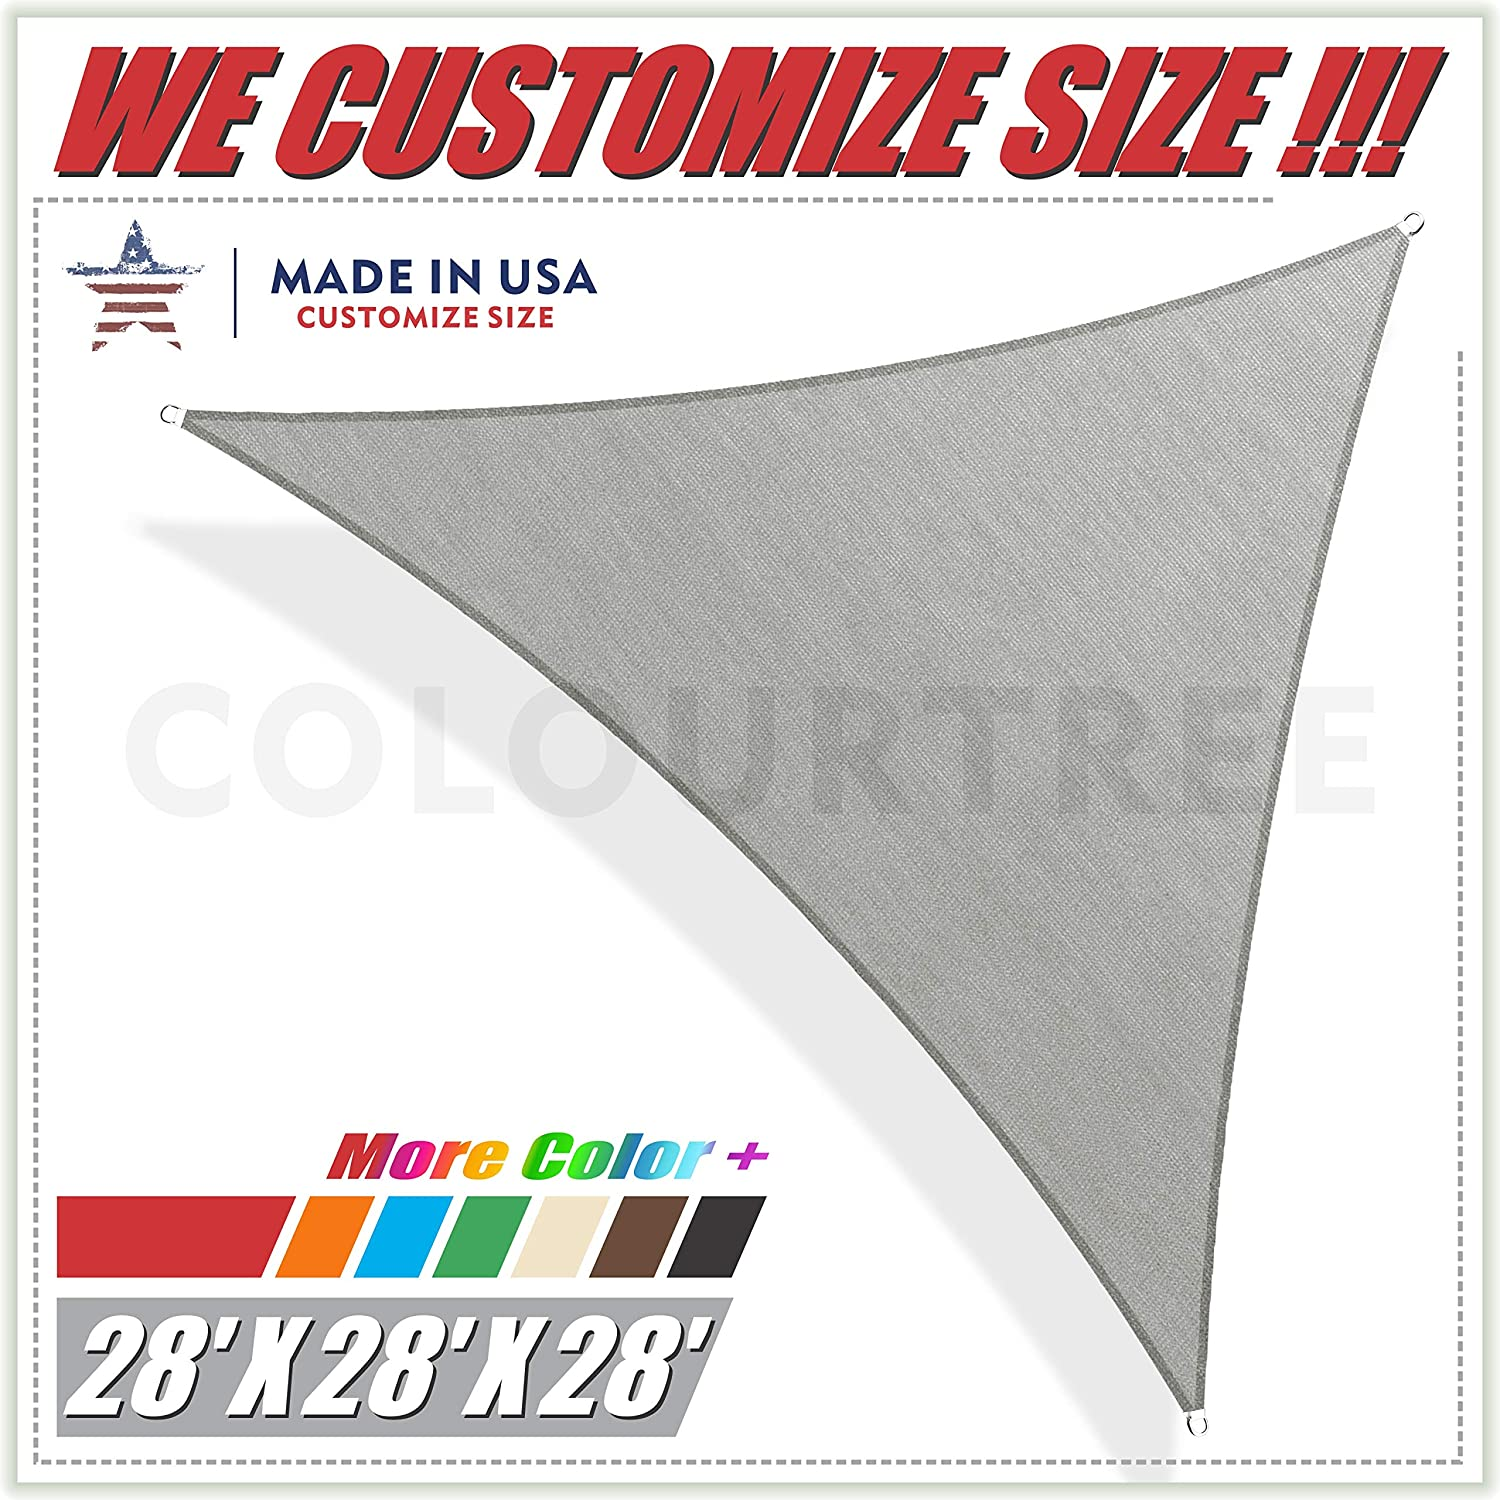 ColourTree 28 x 28 x 28 Grey Sun Shade Sail Triangle Canopy Awning Shelter Fabric Cloth Screen – UV Block UV Resistant Heavy Duty Commercial Grade – Outdoor Patio Carport – We Make Custom Size